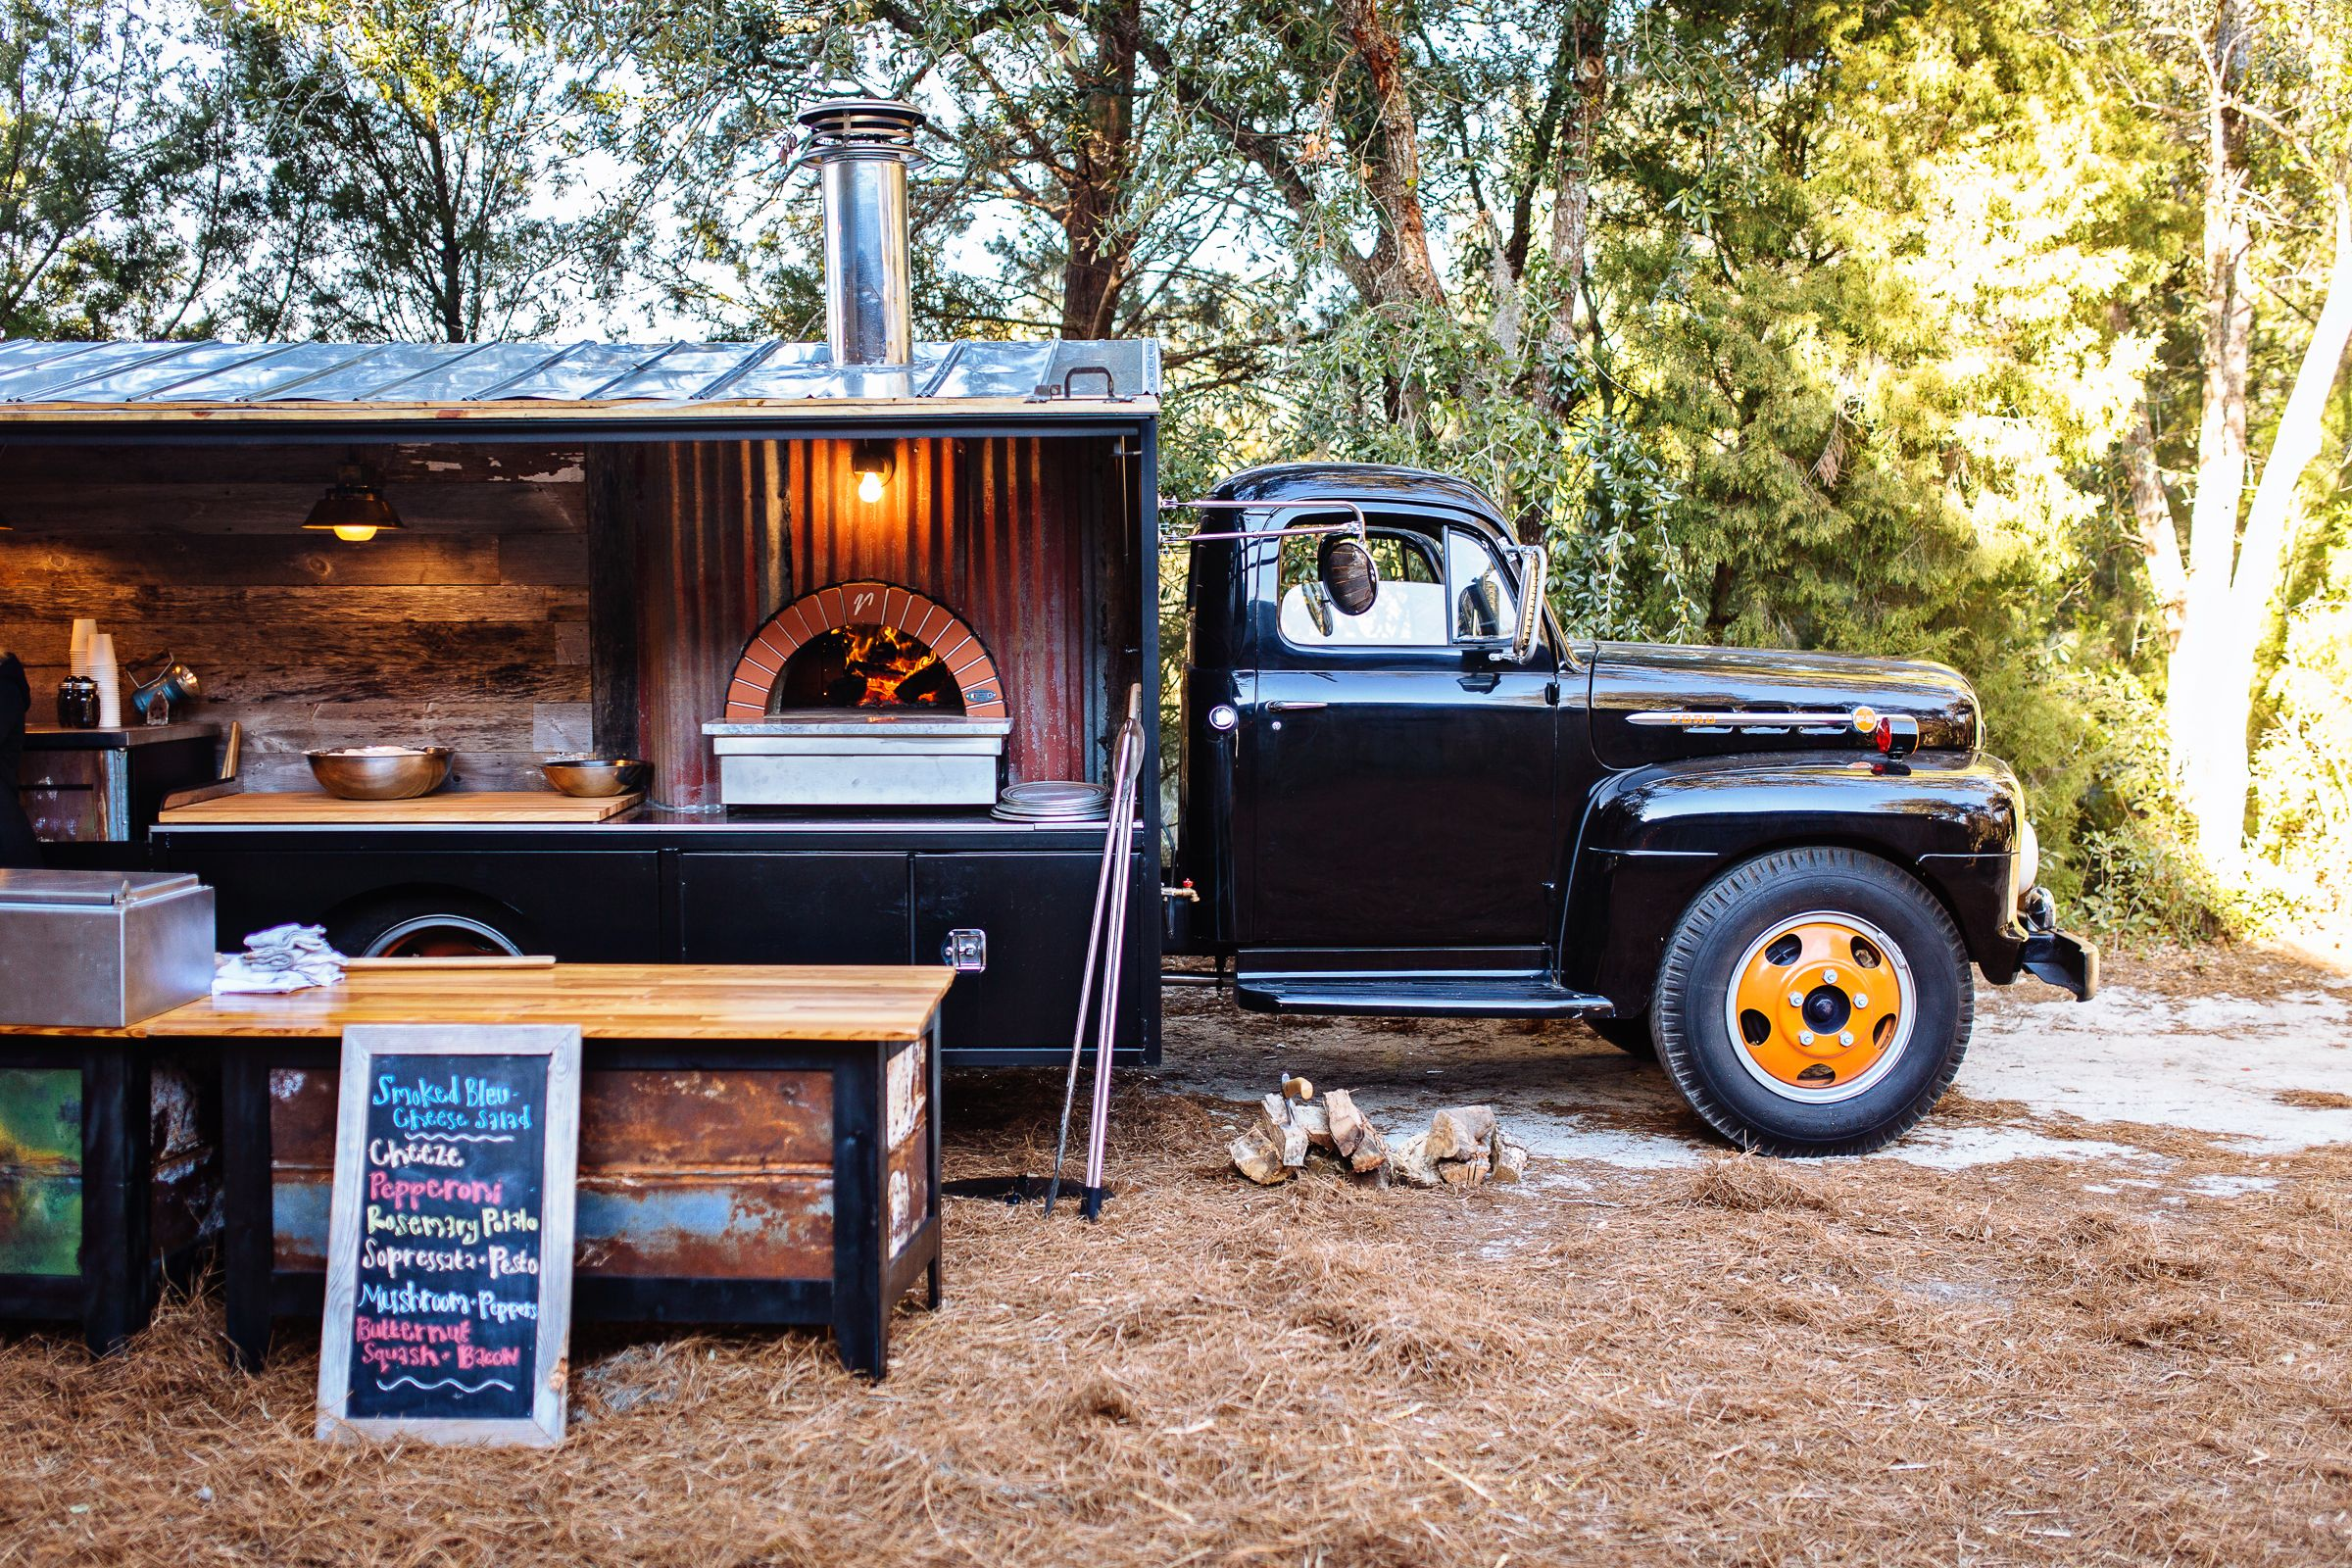 Coastal Crust mobile pizza eatery in a very cool truck ...